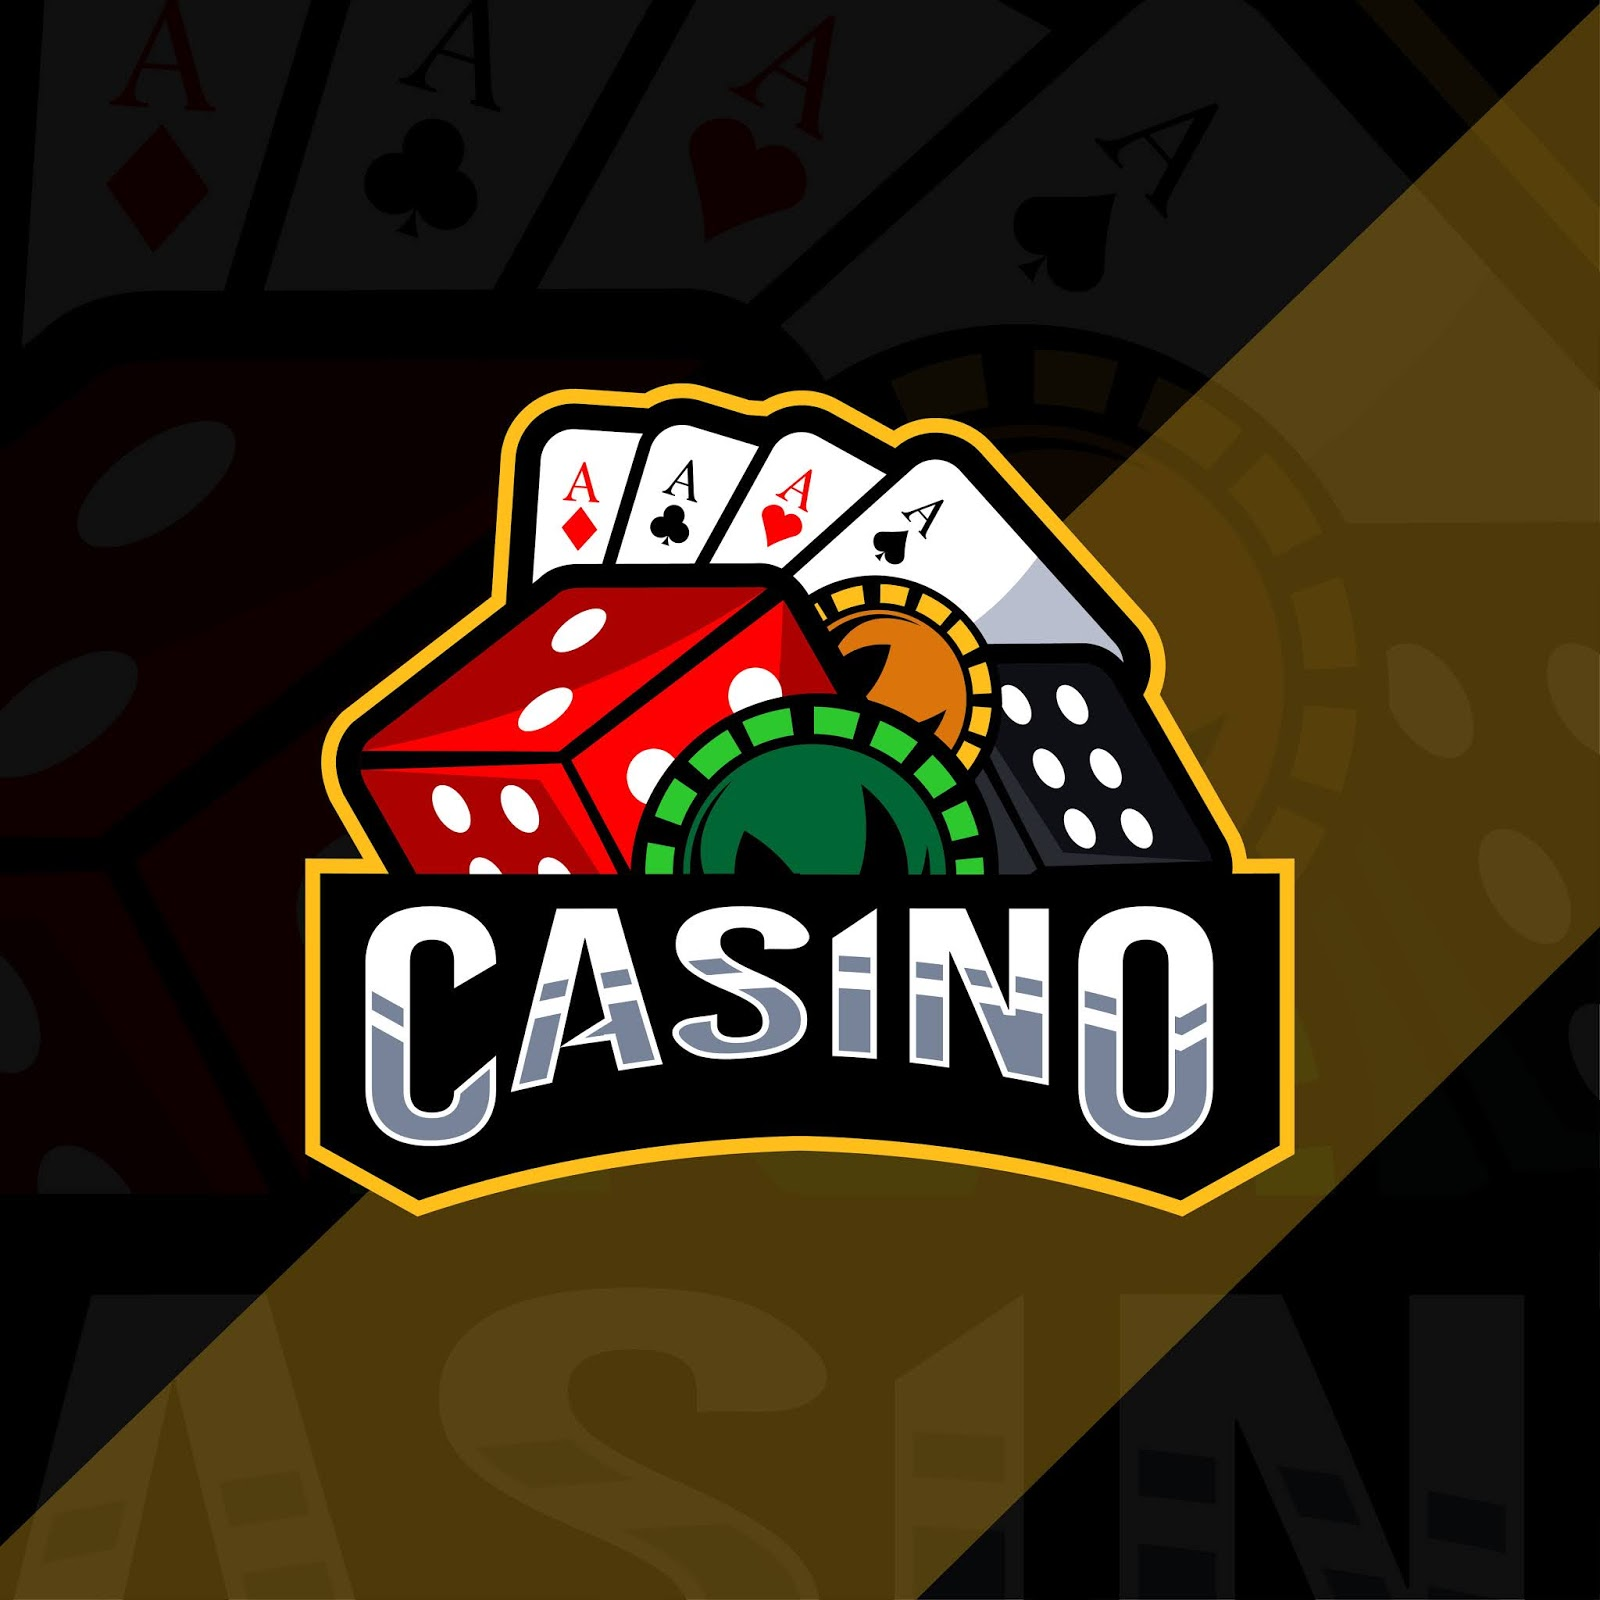 Casino Mascot Logo Esport Template Free Download Vector CDR, AI, EPS and PNG Formats